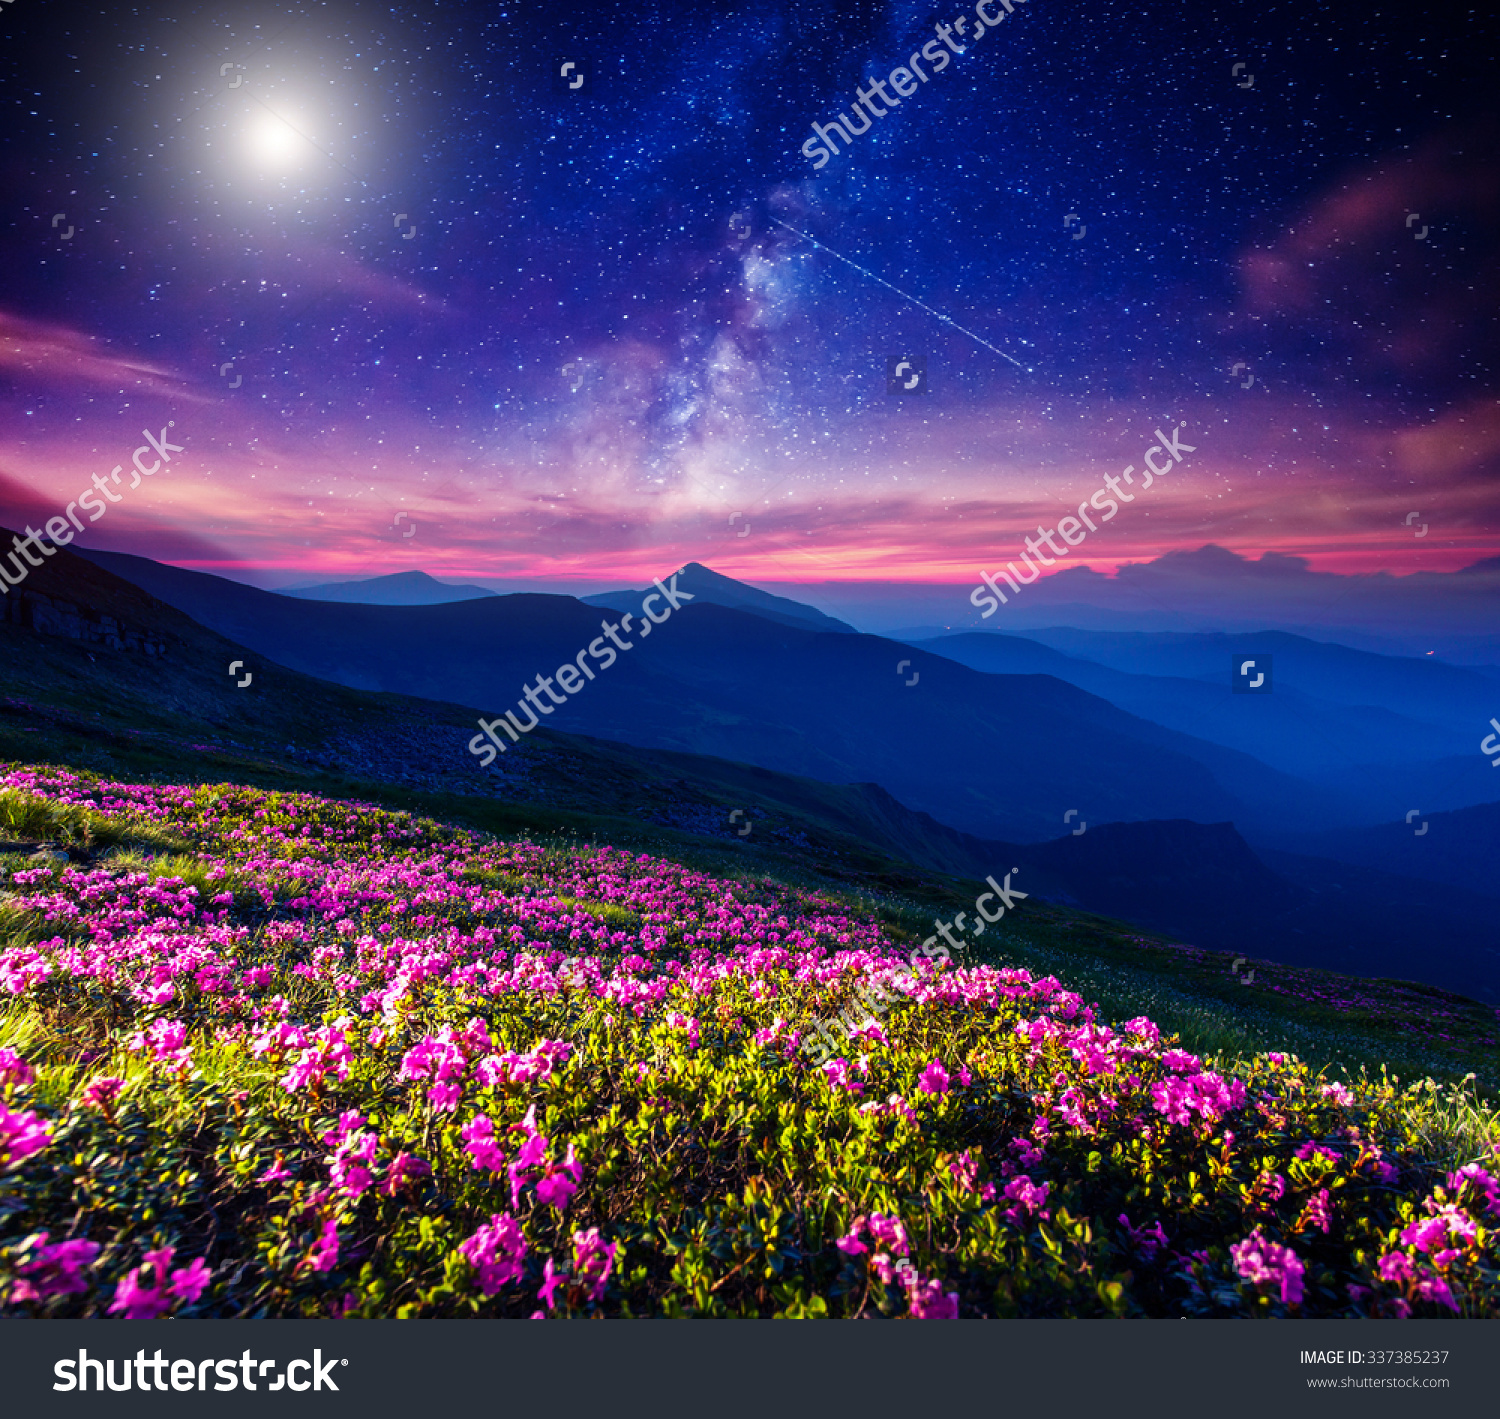 Great View Magic Pink Rhododendron Flowers Stock Photo 337385237.